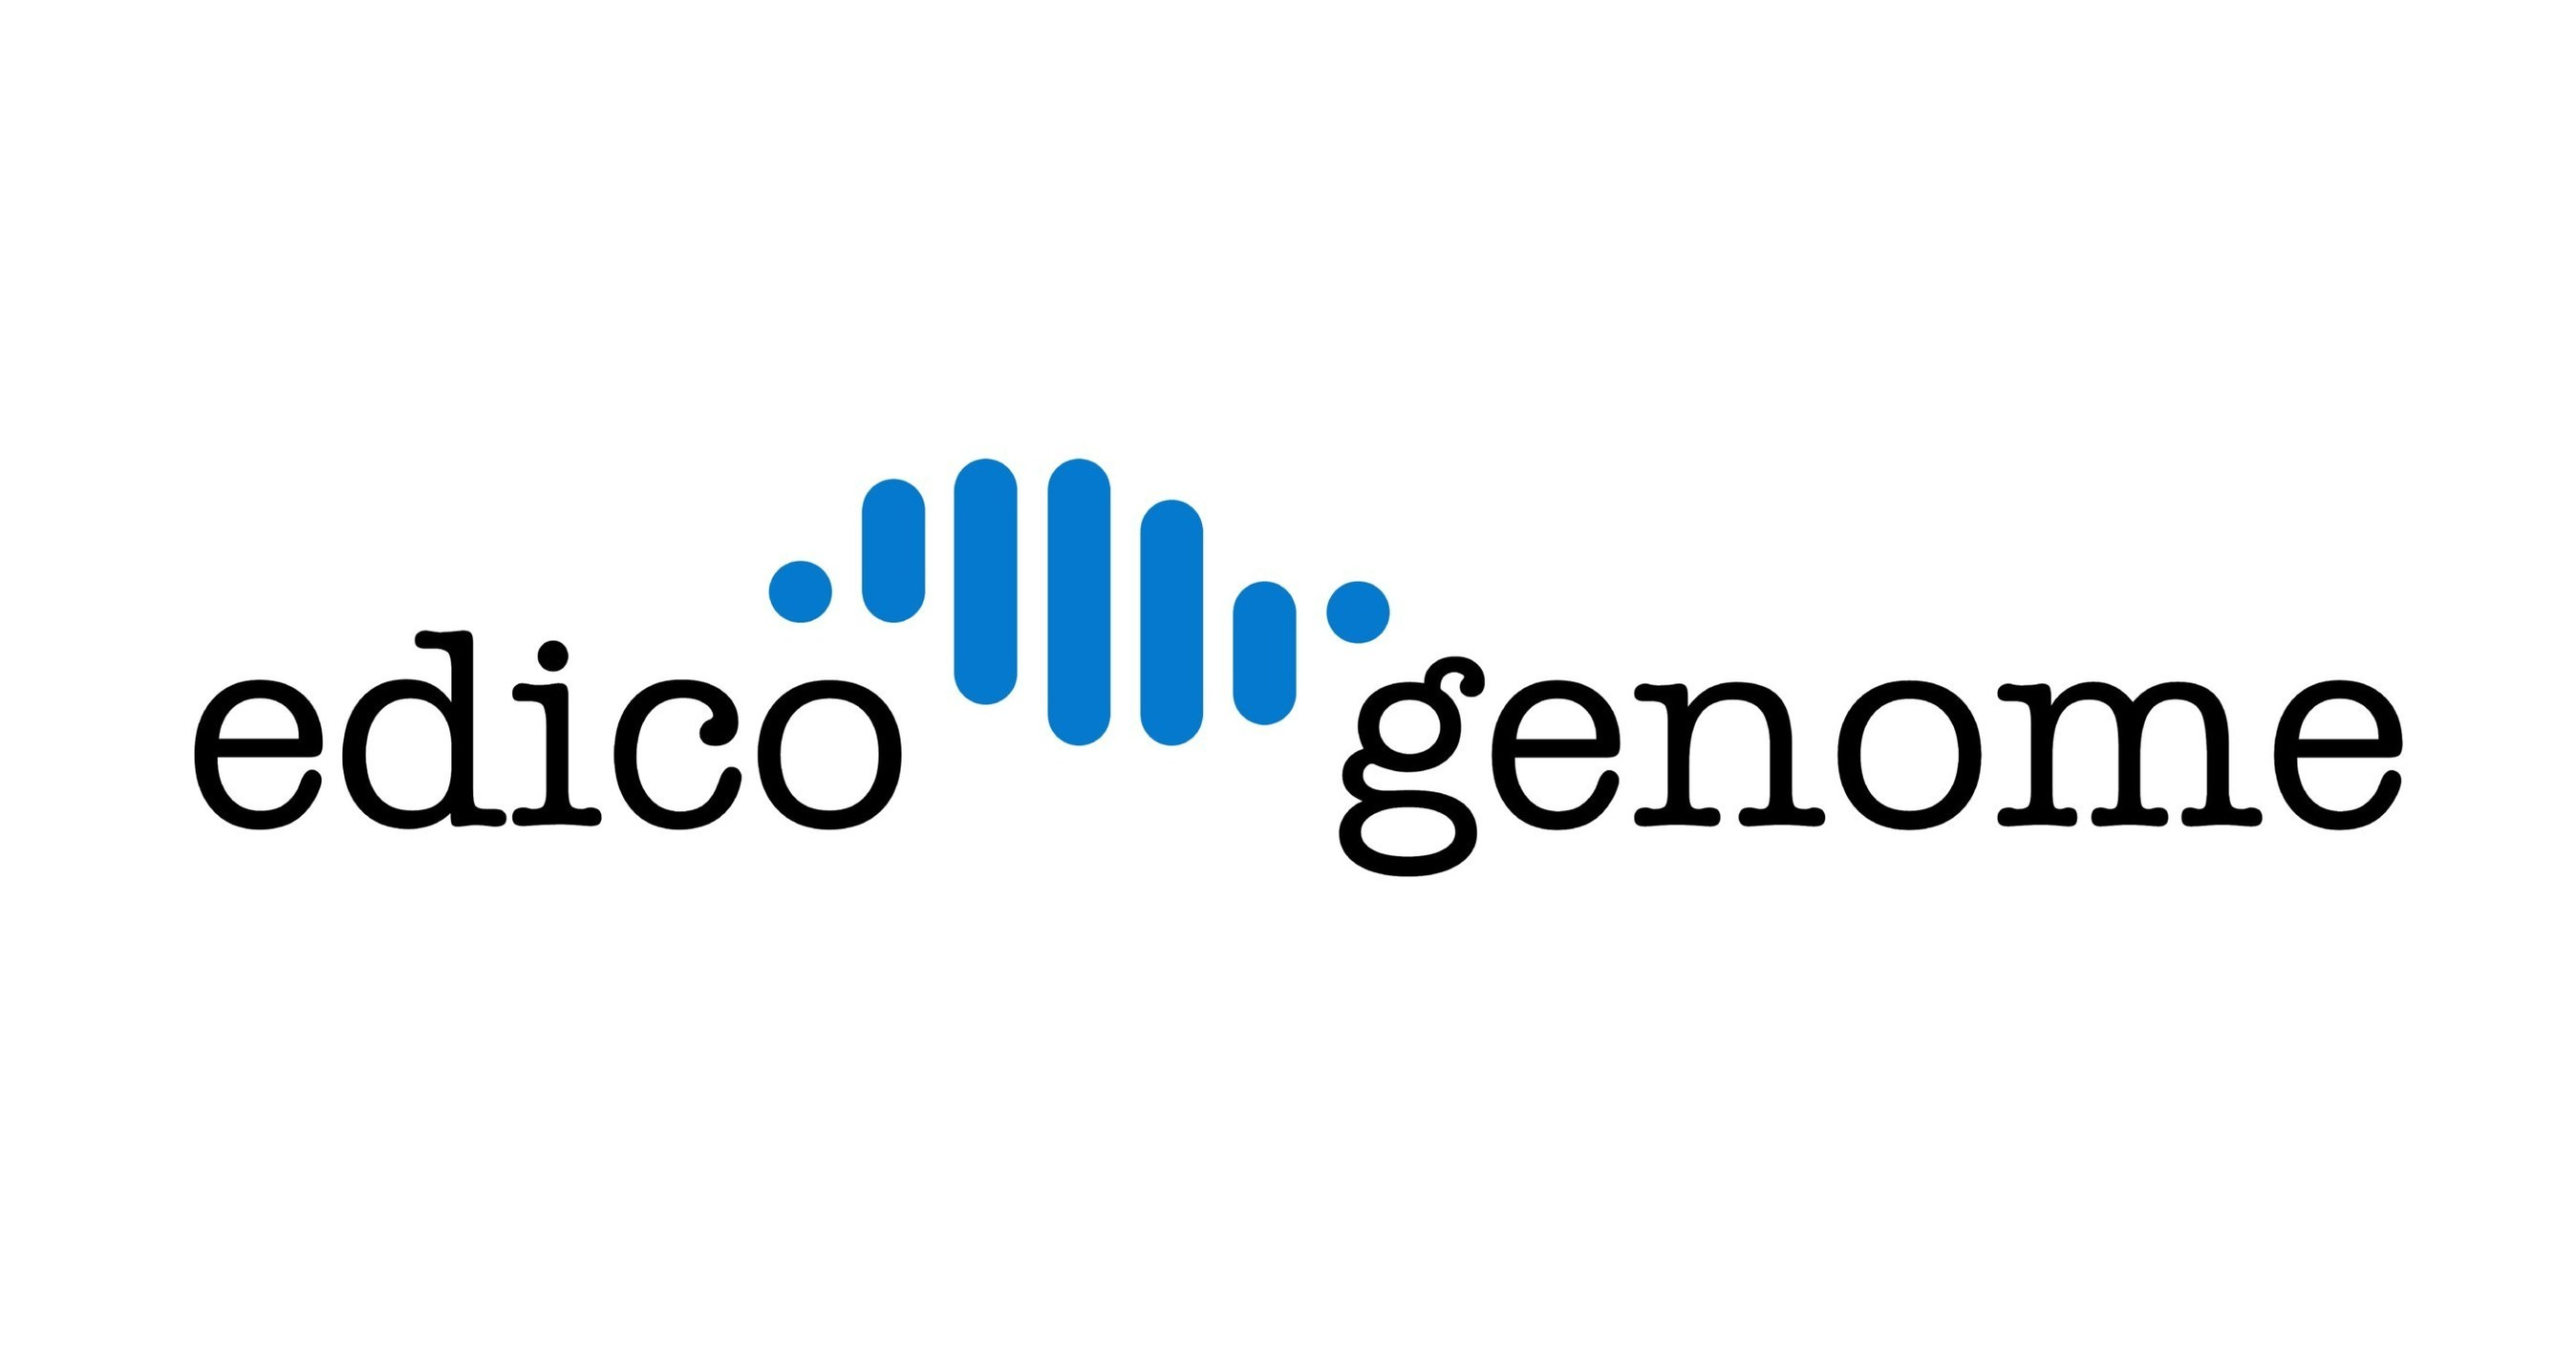 Edico Genome And InterSystems Partner To Streamline